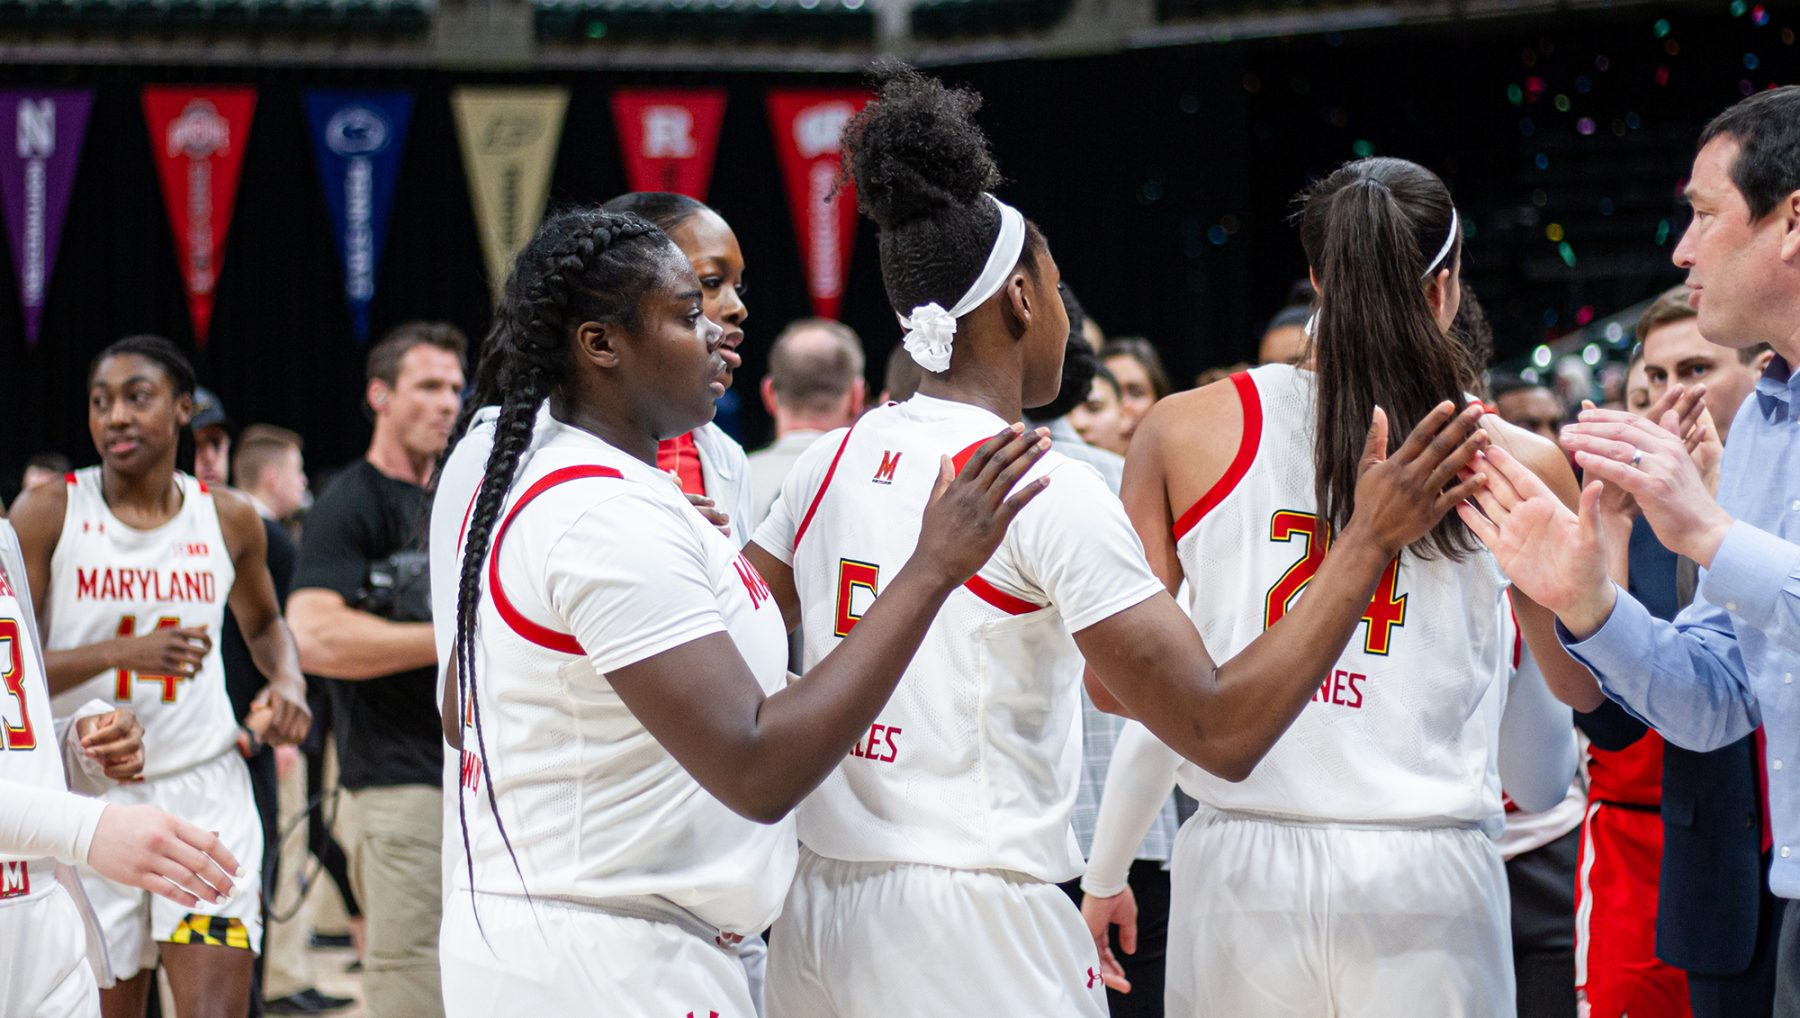 Maryland women's basketball has remained optimistic in the face of uncertainty